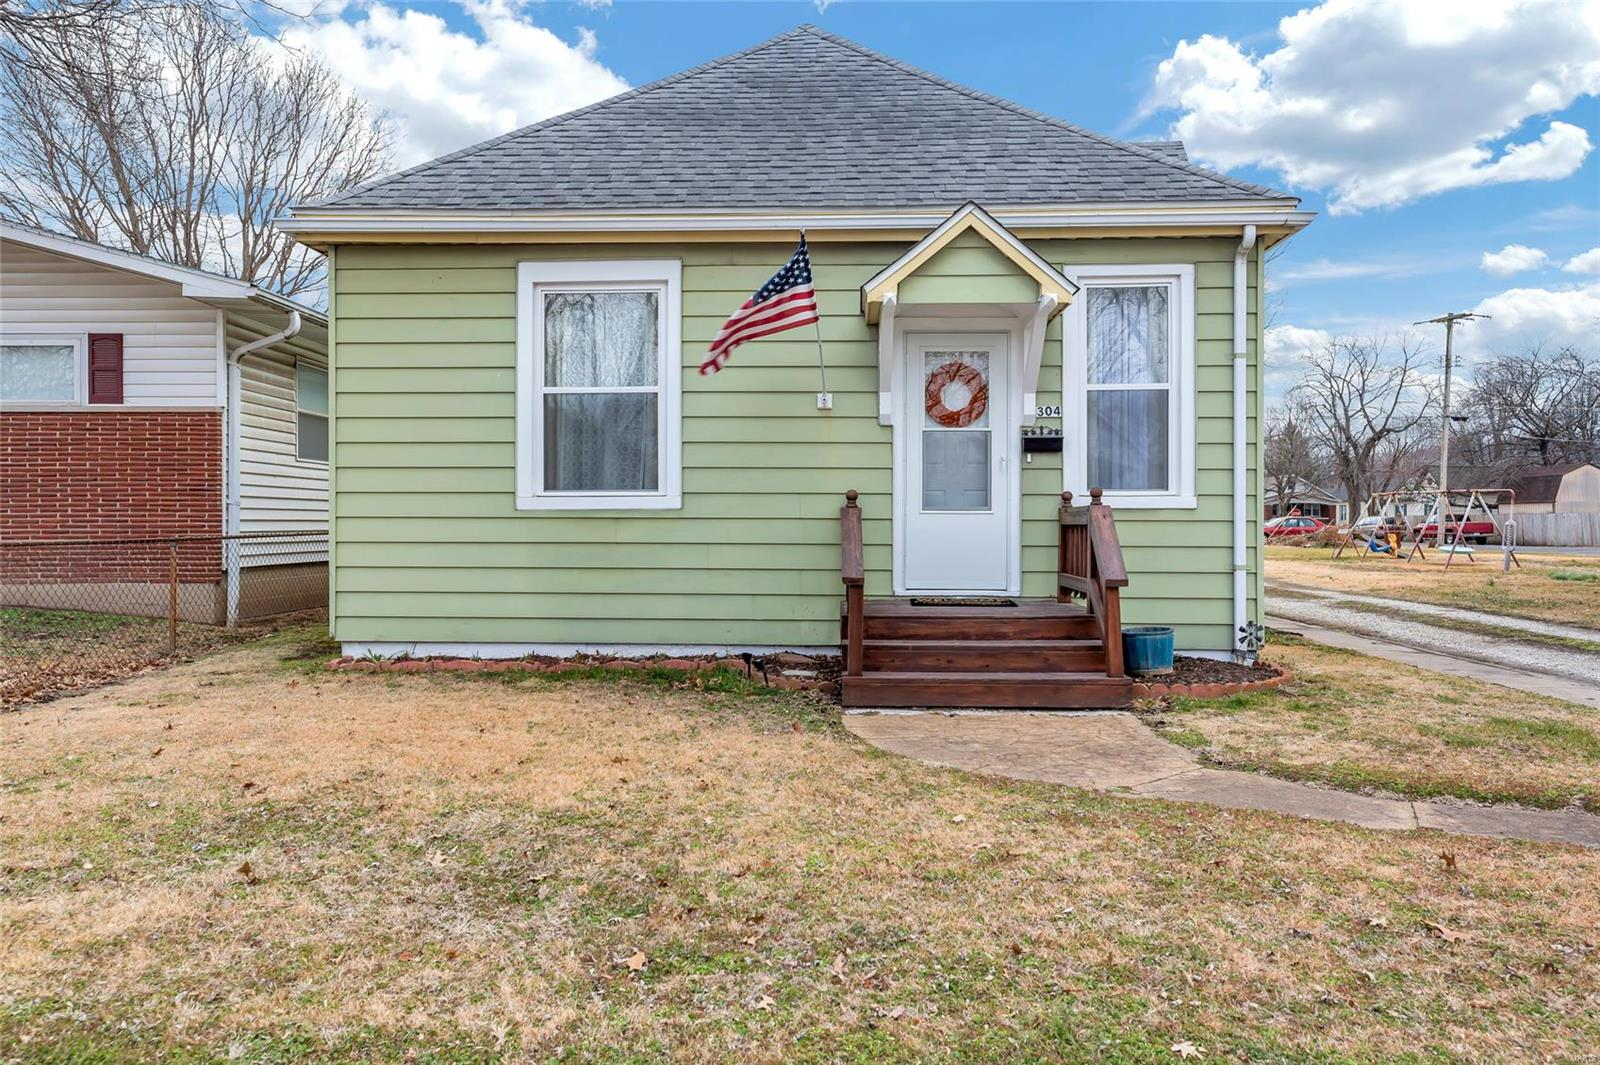 304 N 3rd Street Property Photo - Dupo, IL real estate listing